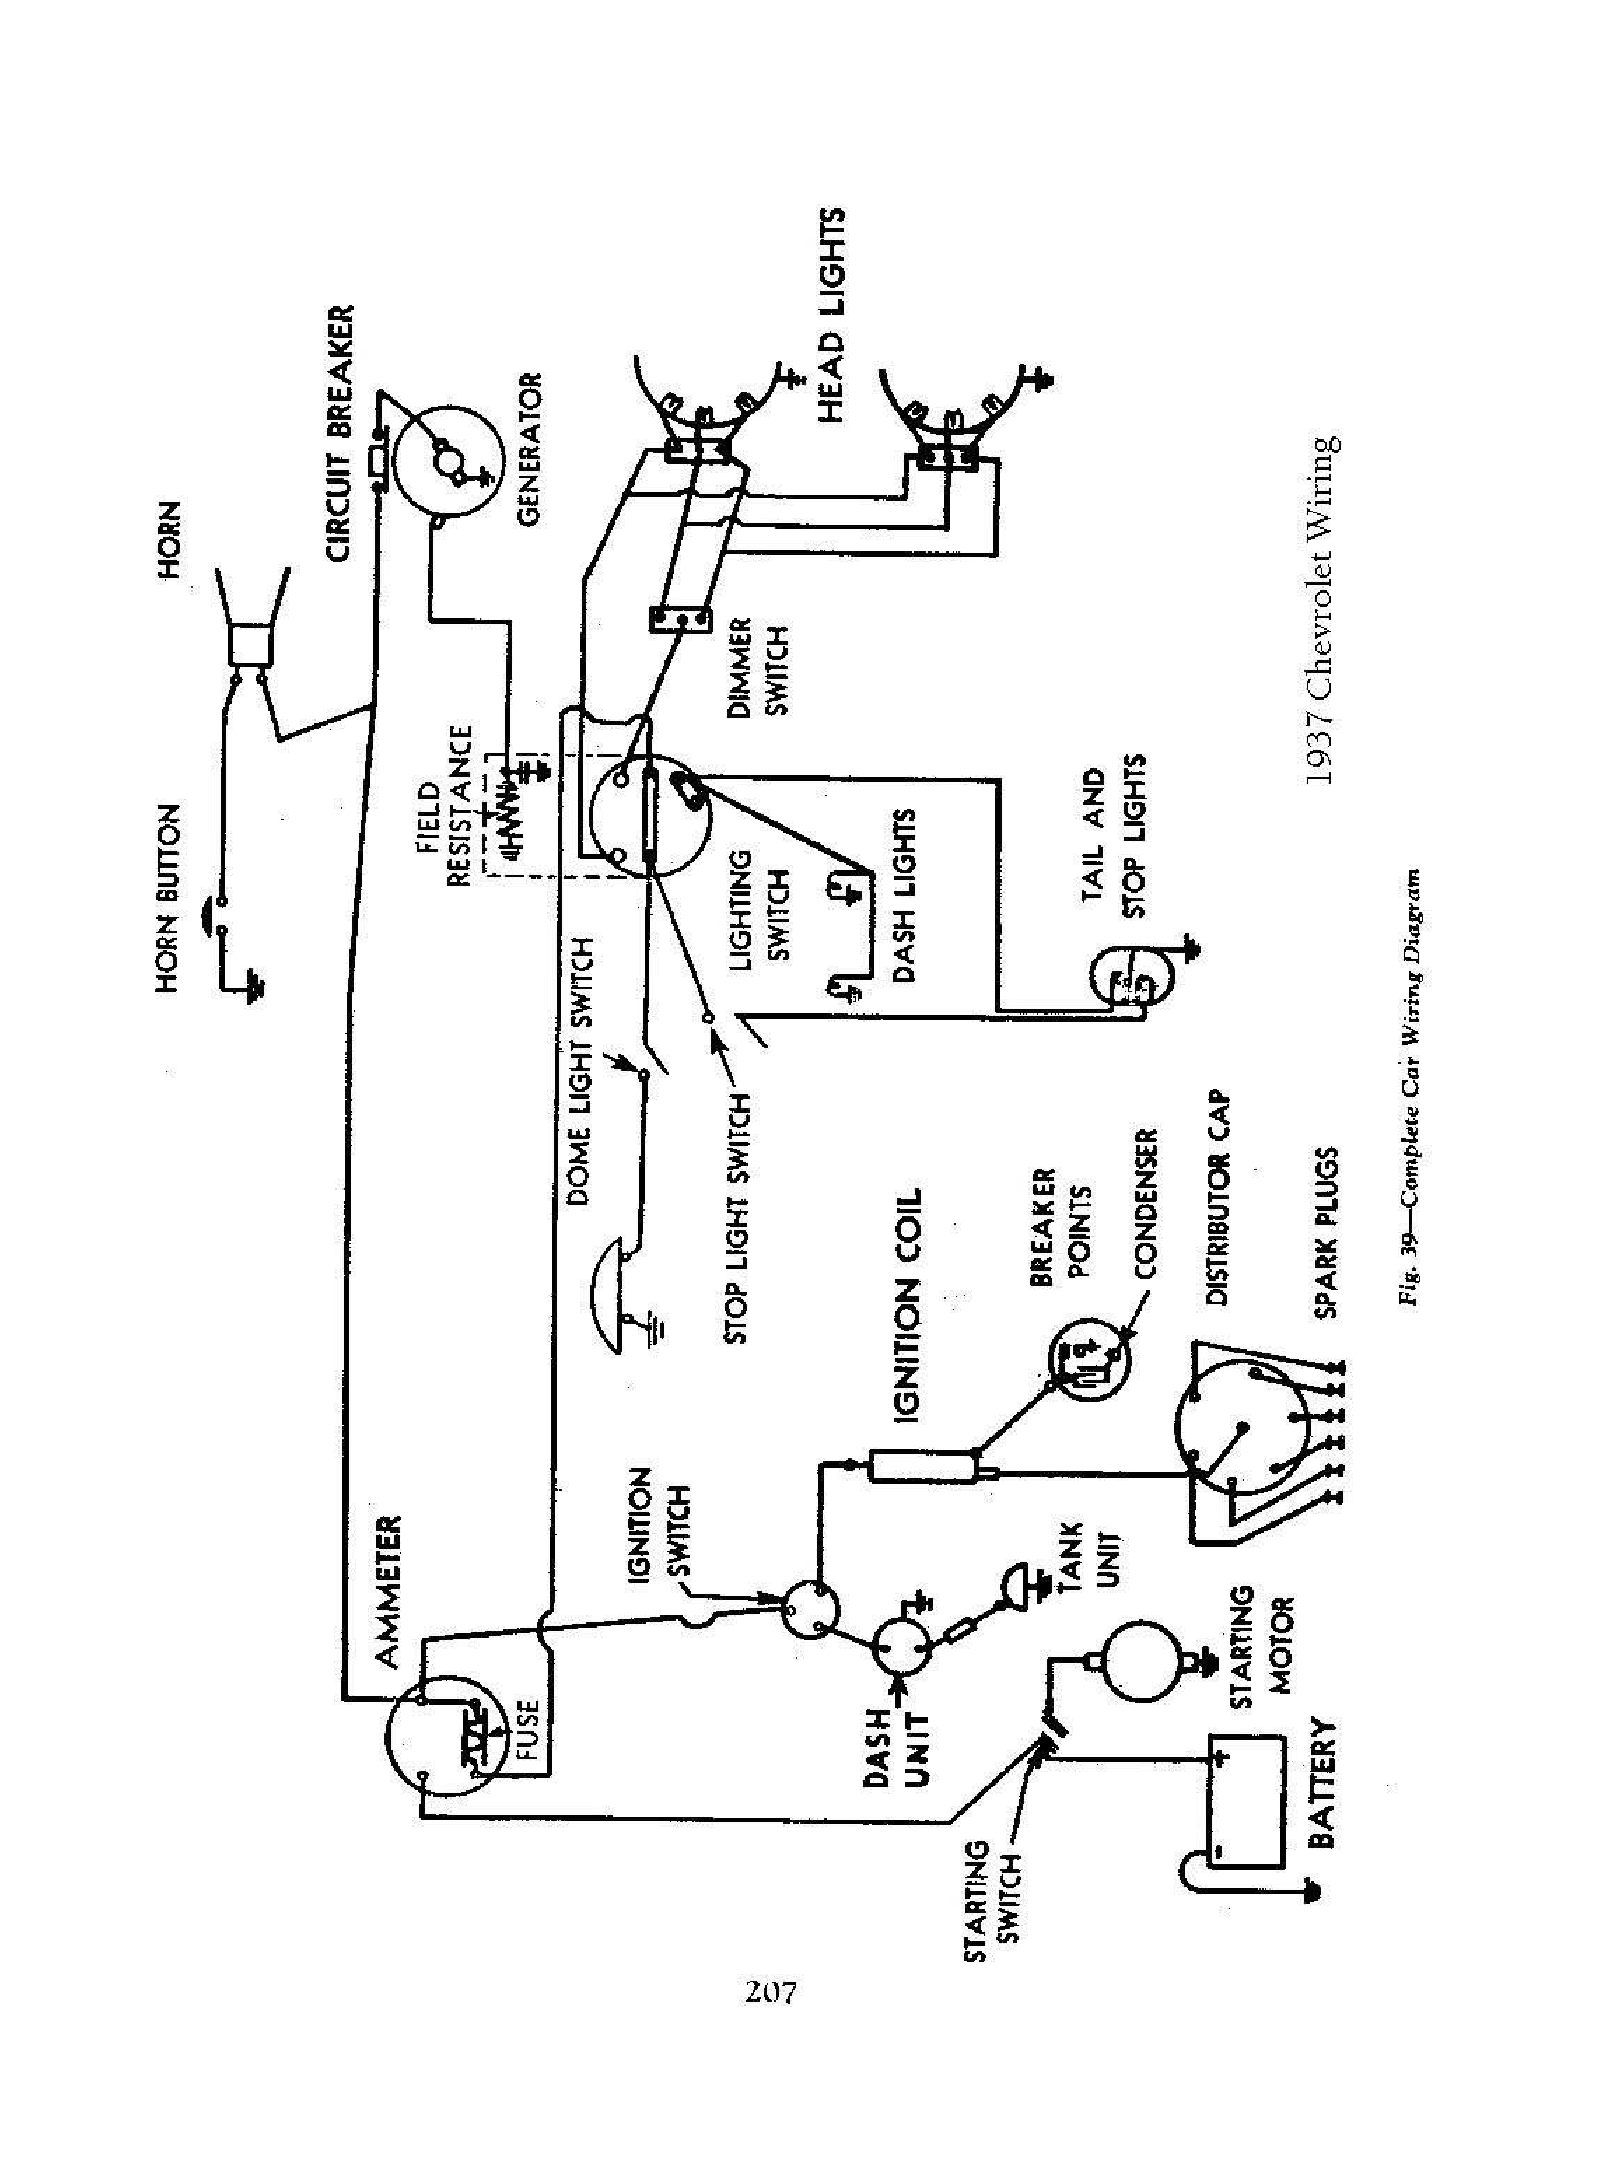 hight resolution of chevy generator wiring wiring diagram usedchevrolet generator wiring diagram wiring diagram centre 1957 chevy generator wiring